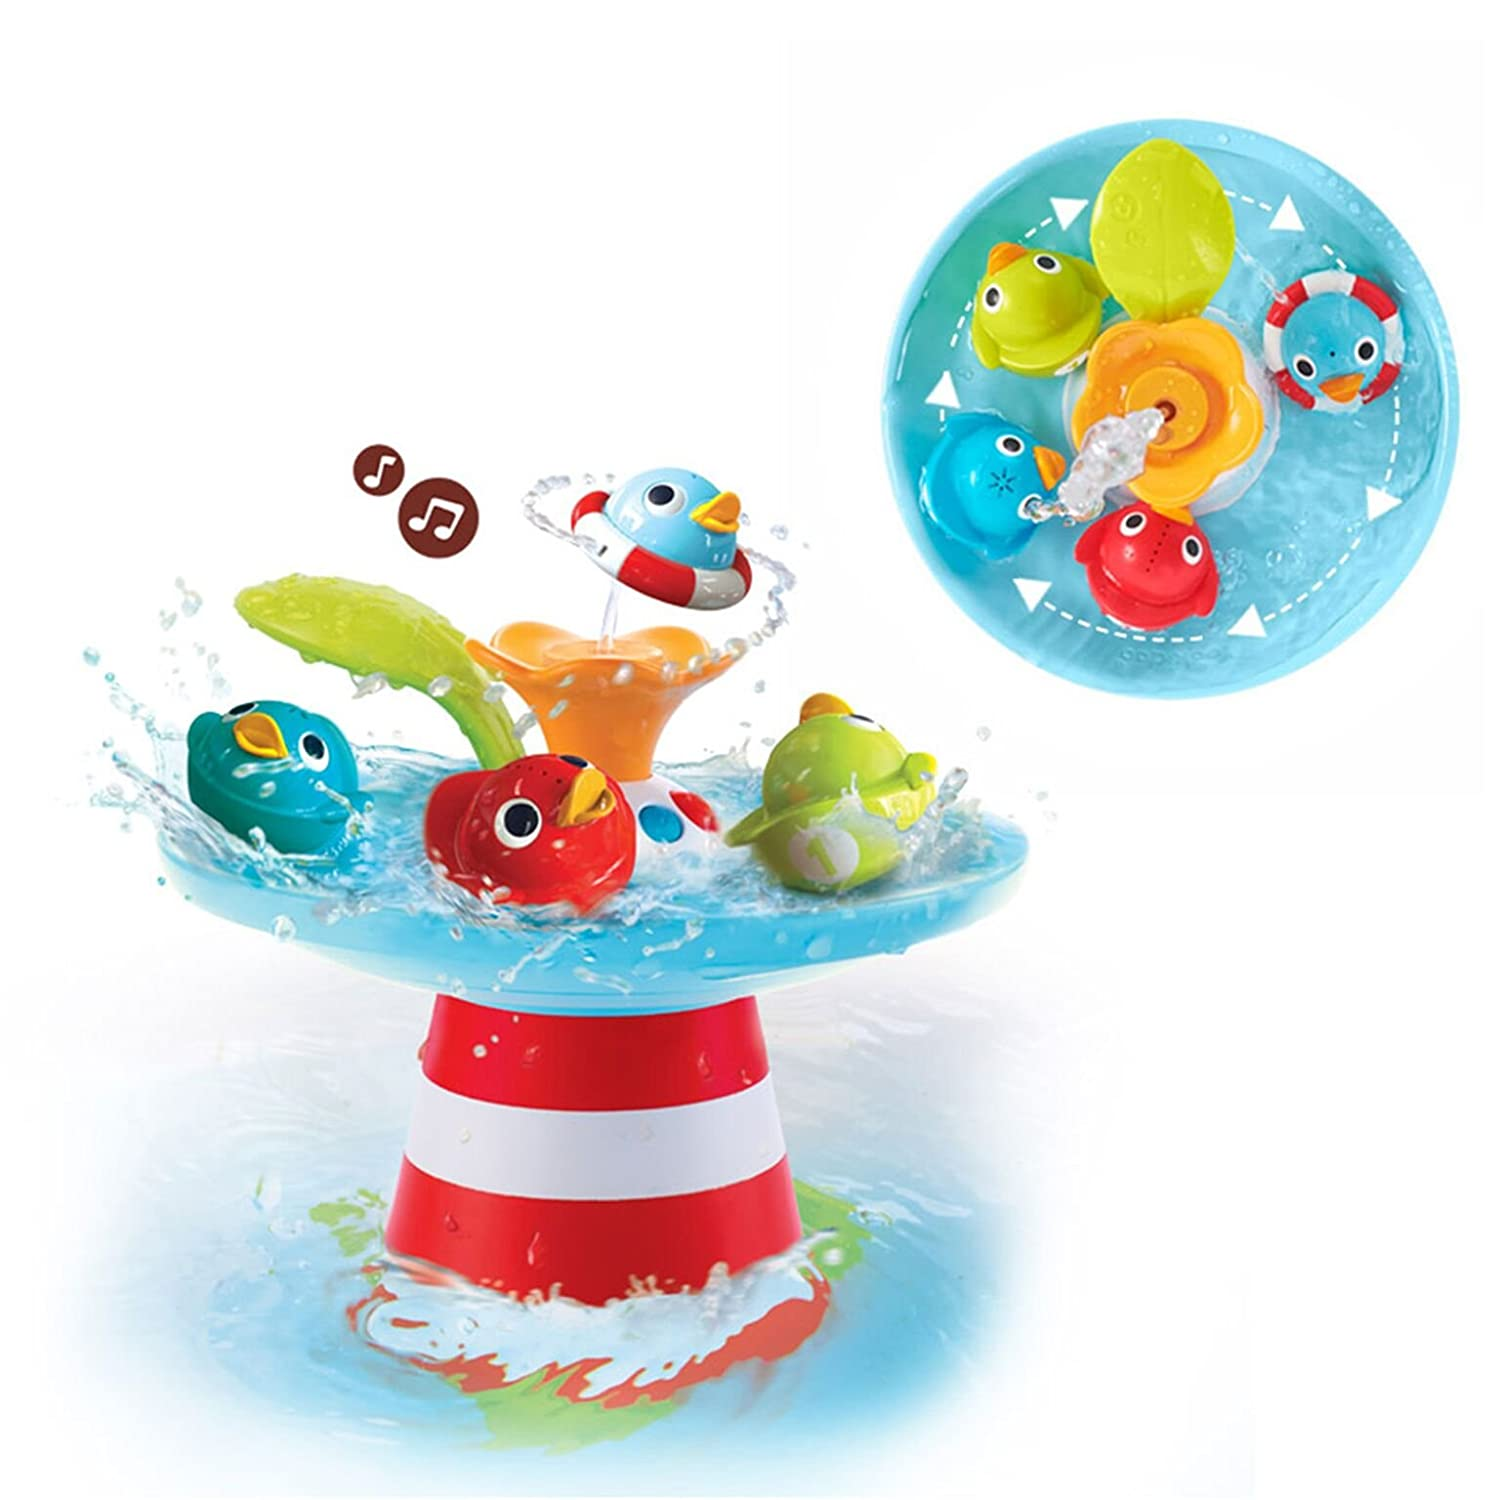 Top 15 Best Bath Toys for Toddlers Reviews in 2019 9